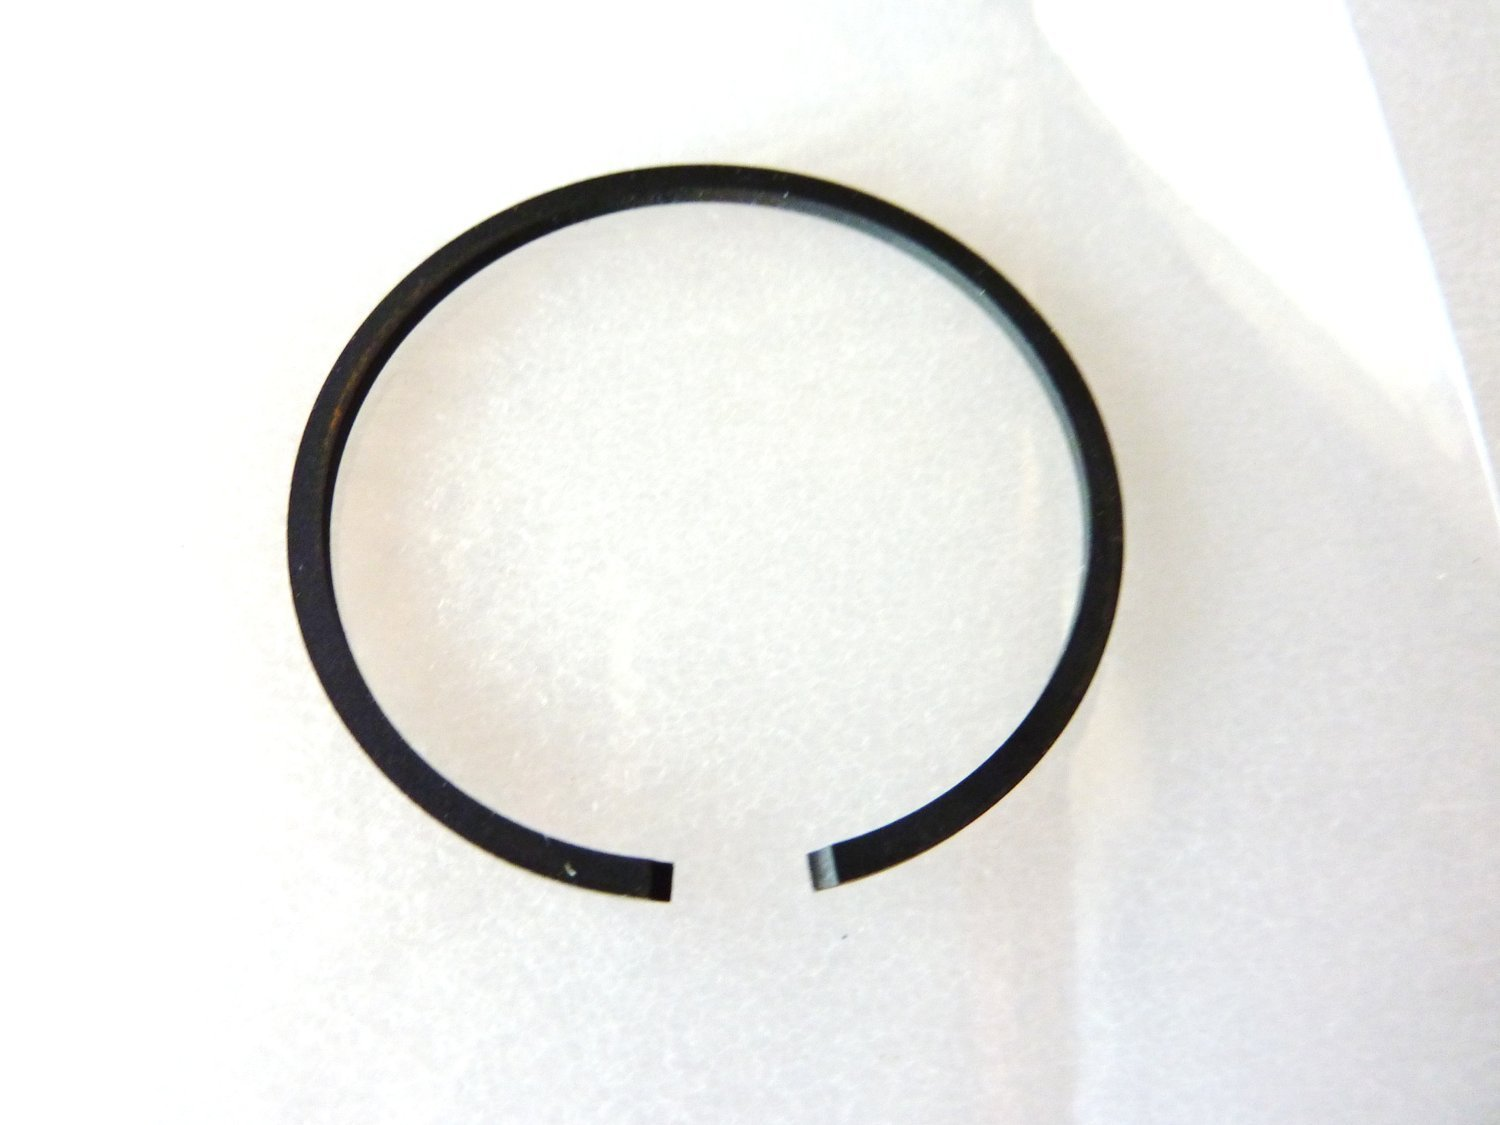 YAMASCO 45x 1.5 mm (2) OEM Kolben Ring Set fit Husqvarna 51 254 254XP 252RX 353 (45MM) Ringe Kolbenring